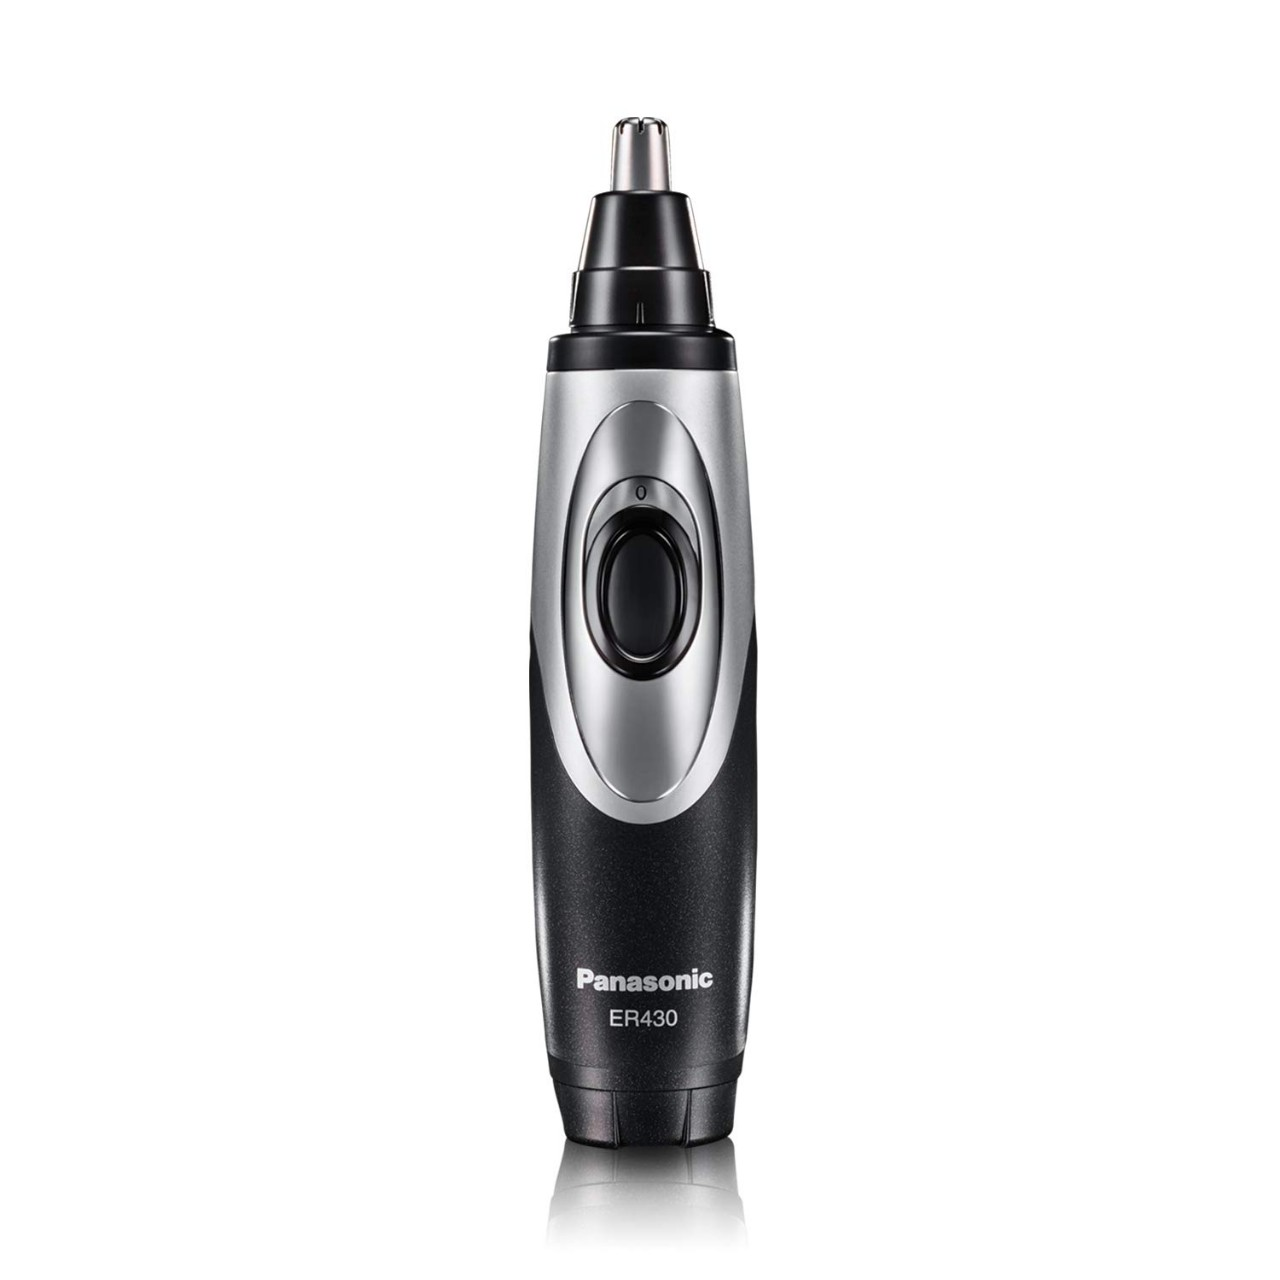 Panasonic Nose Hair Trimmer and Ear Hair Trimmer ER430K, Vacuum Cleaning System , Men's, Wet/Dry